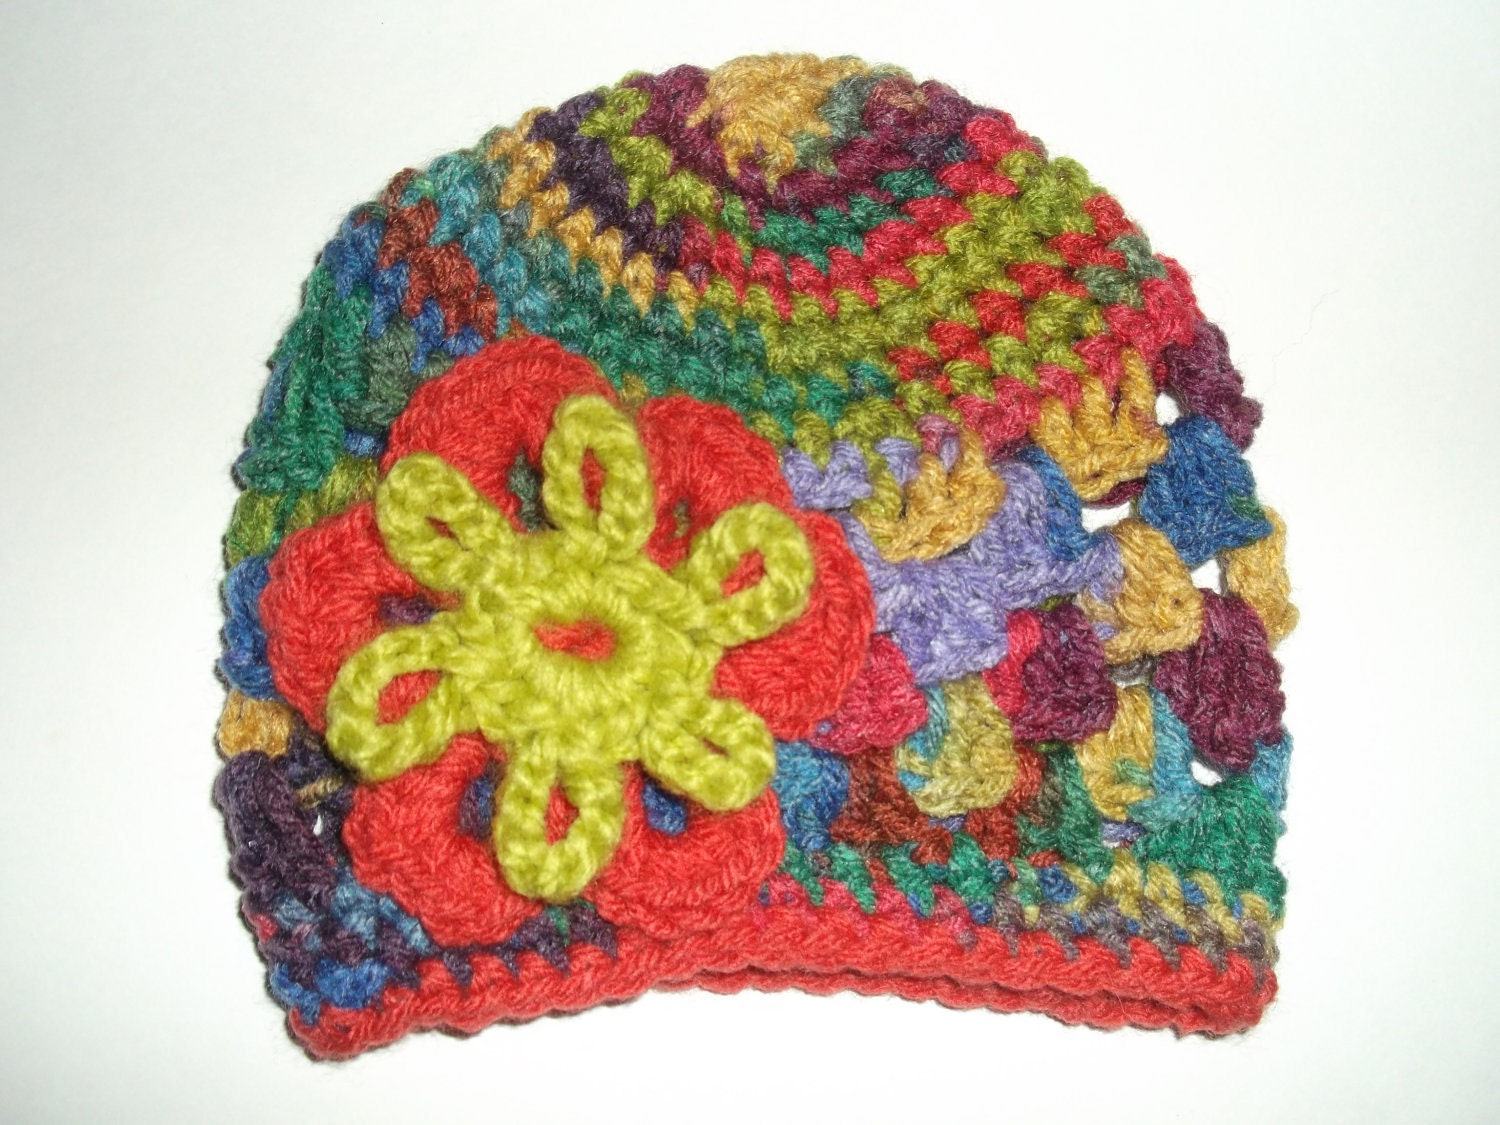 Baby Crochet Beanie Hat - Blossom Hat - 3-6 months - Crayon pack colors :)